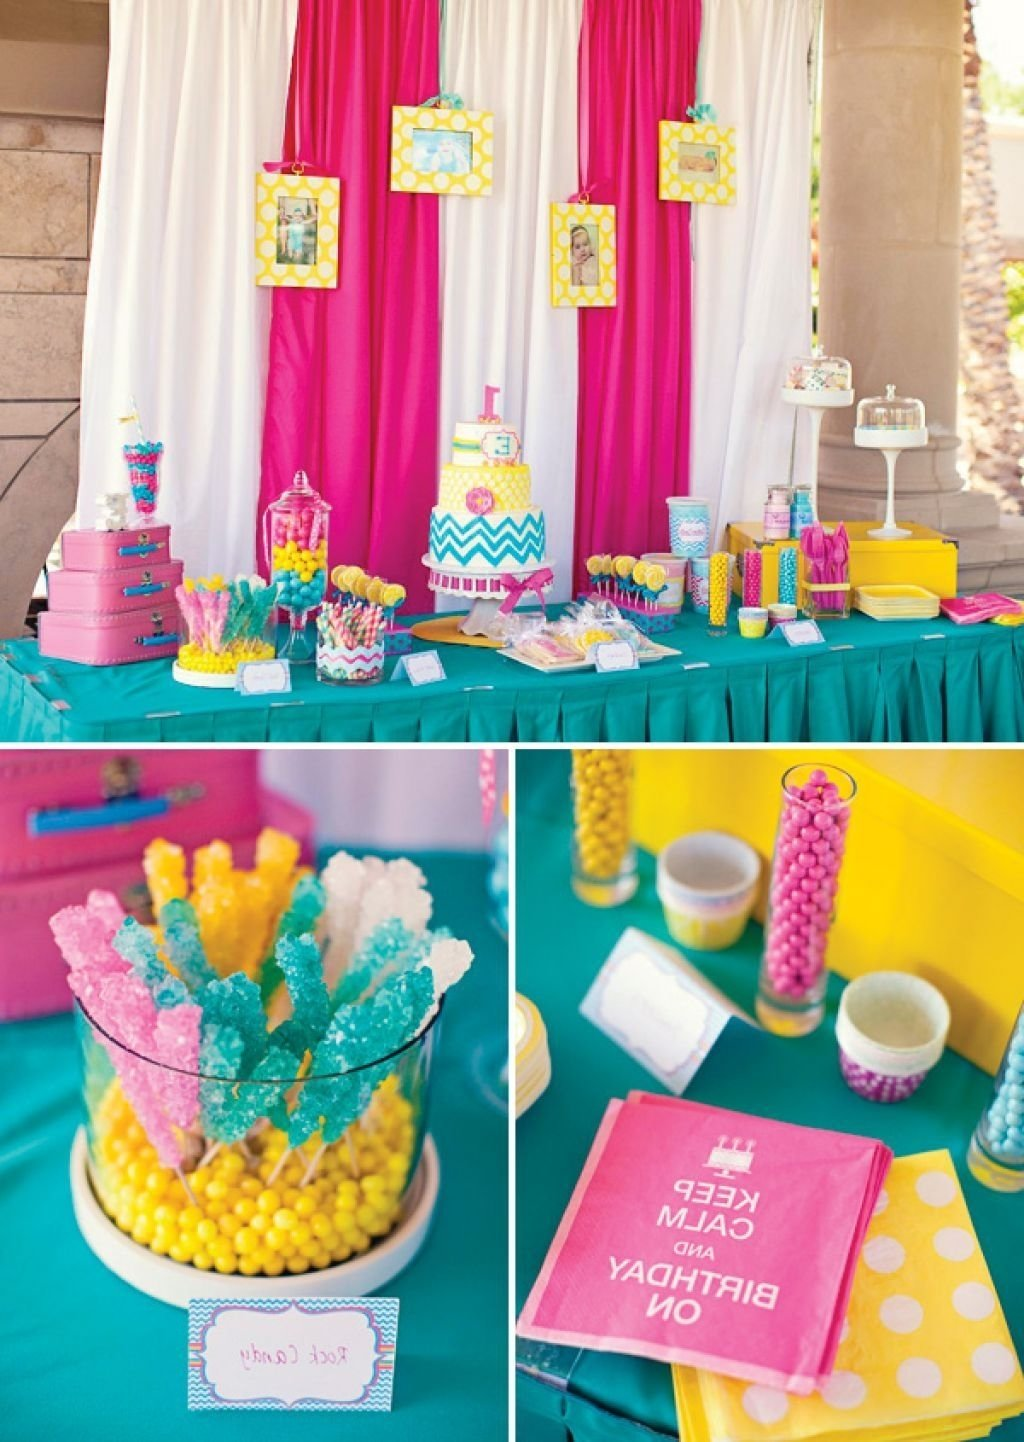 10 Gorgeous 6 Year Old Girl Birthday Party Ideas outdoor party decorations google search madeline pinterest 1 2020